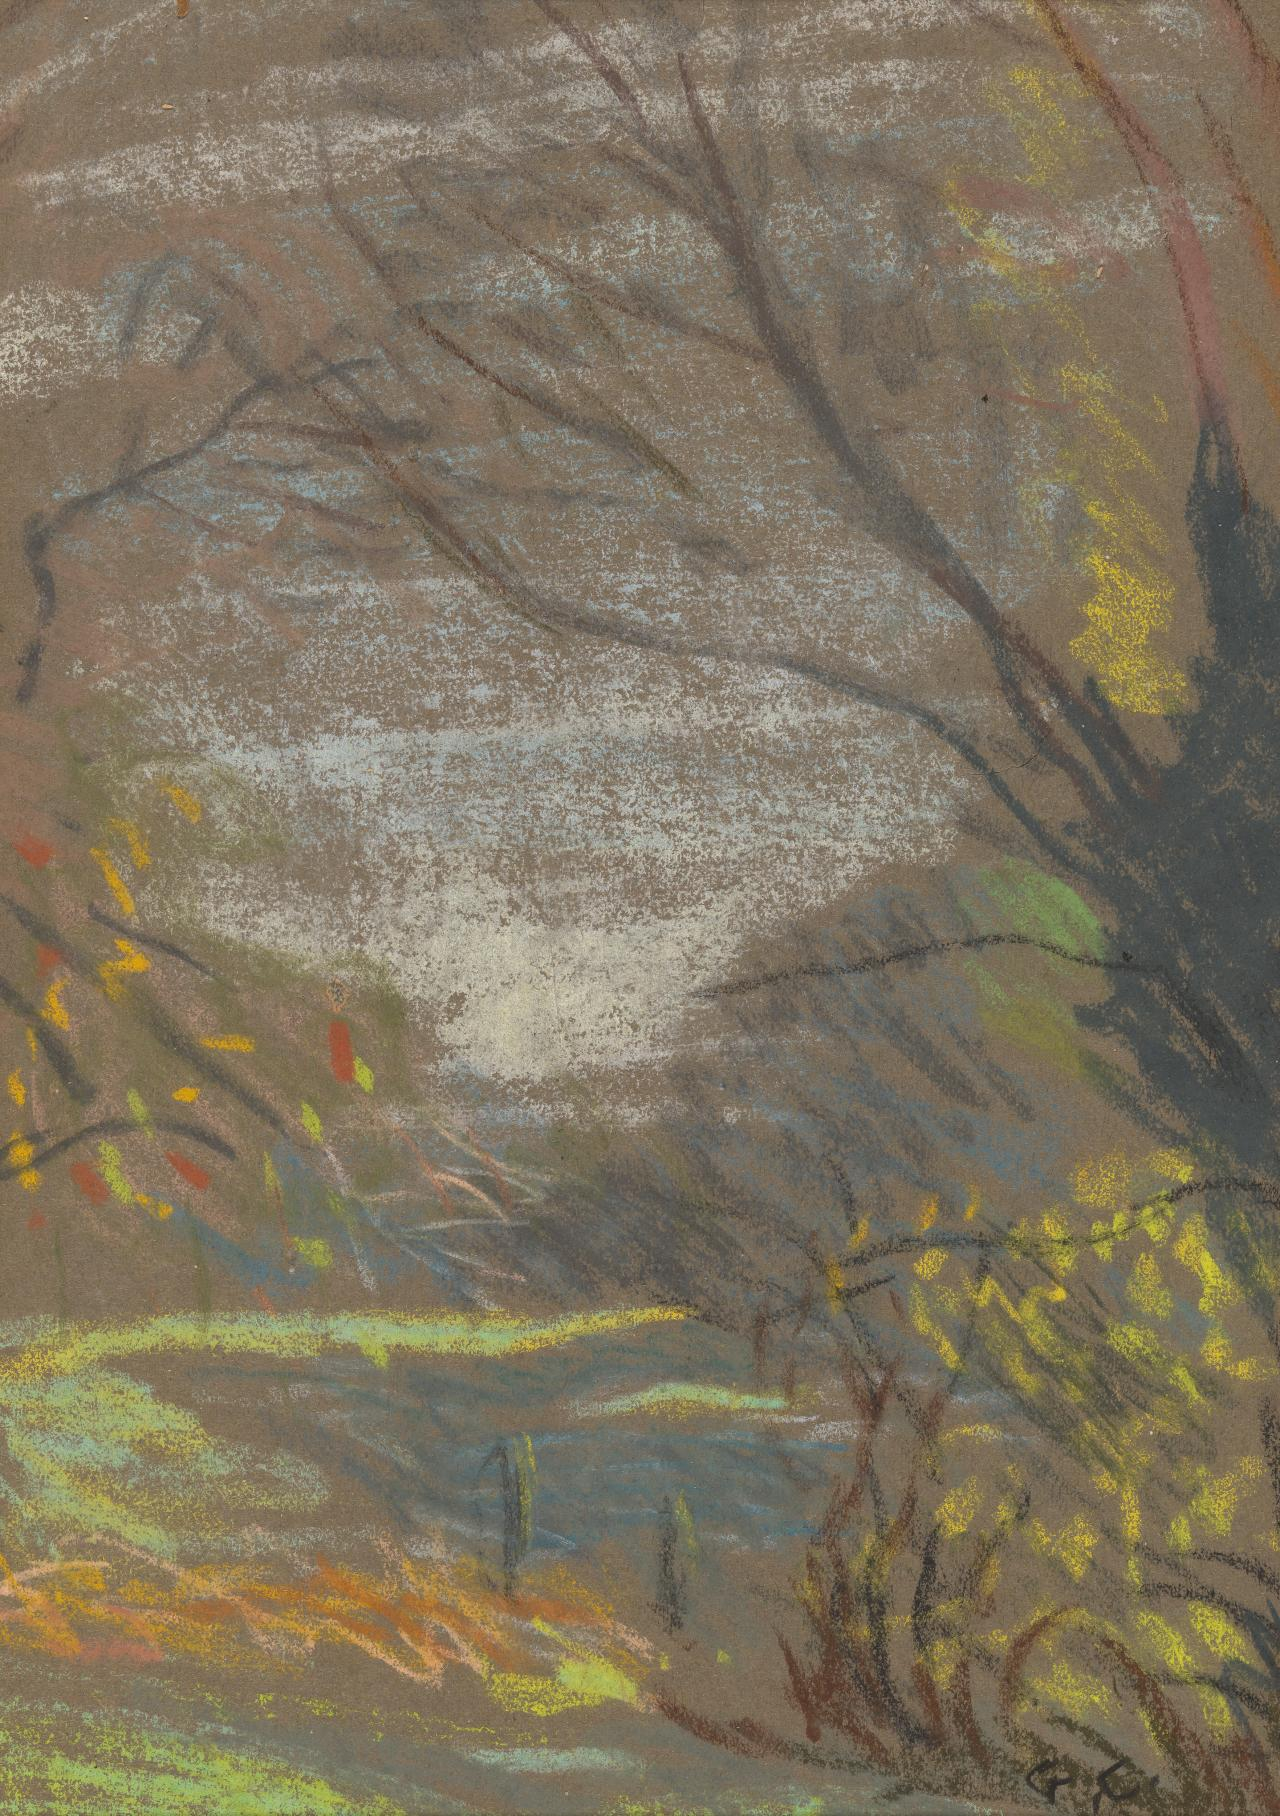 Landscape Detail: Sketch for the Ploughman's Breakfast